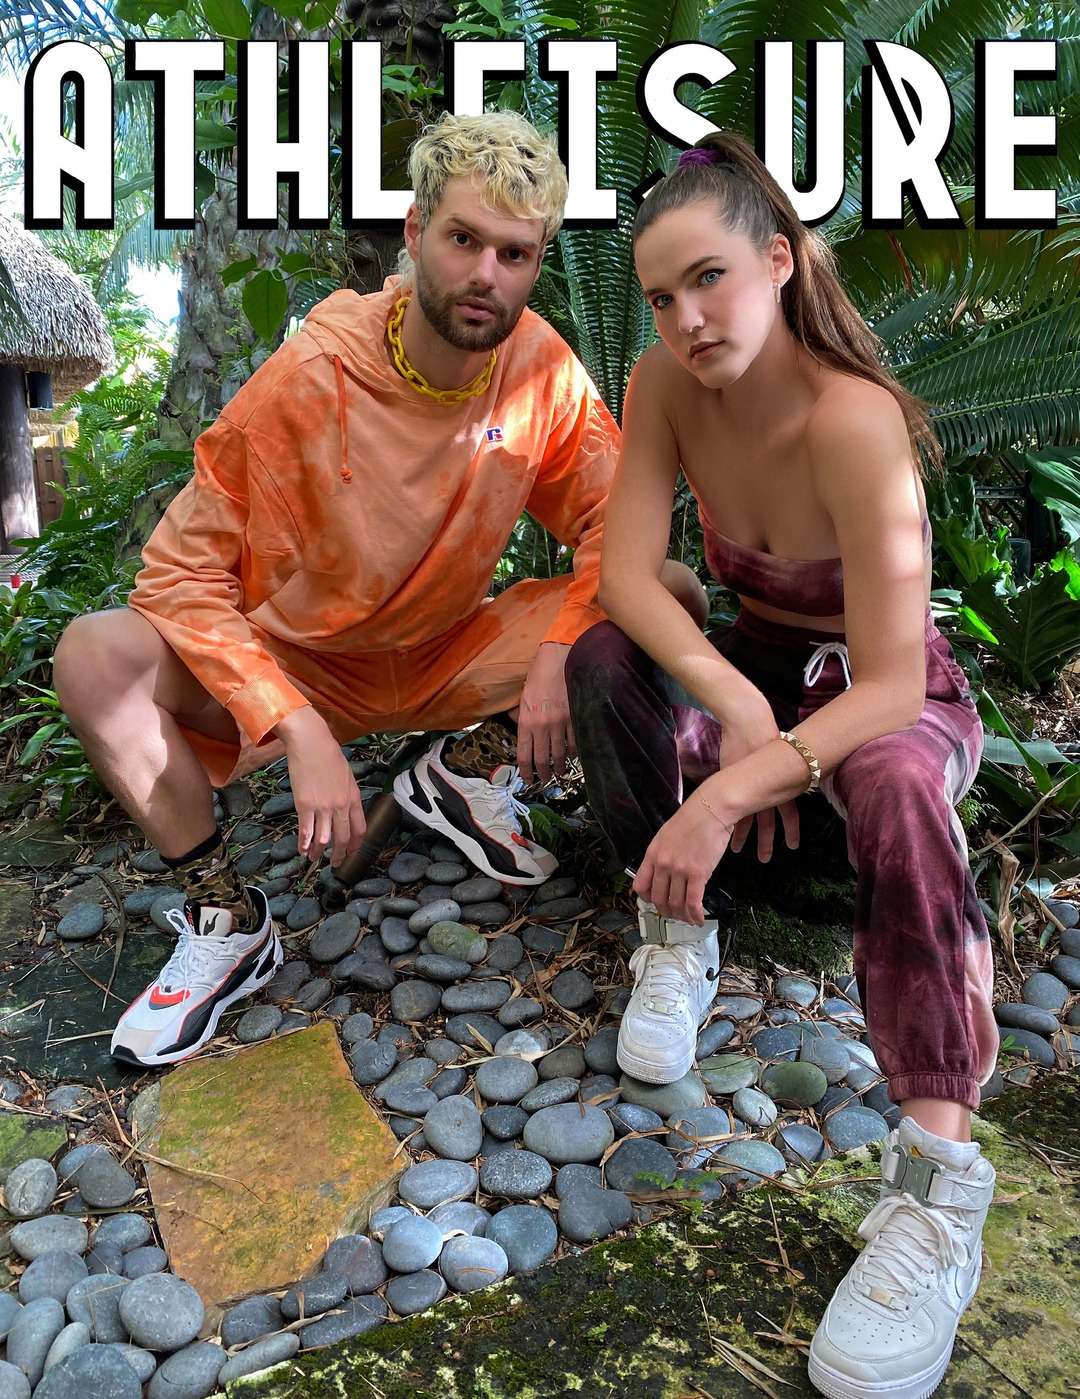 Page 1 of Athleisure Mag #59 Nov 2020 | Good Vibes Only with SOFI TUKKER